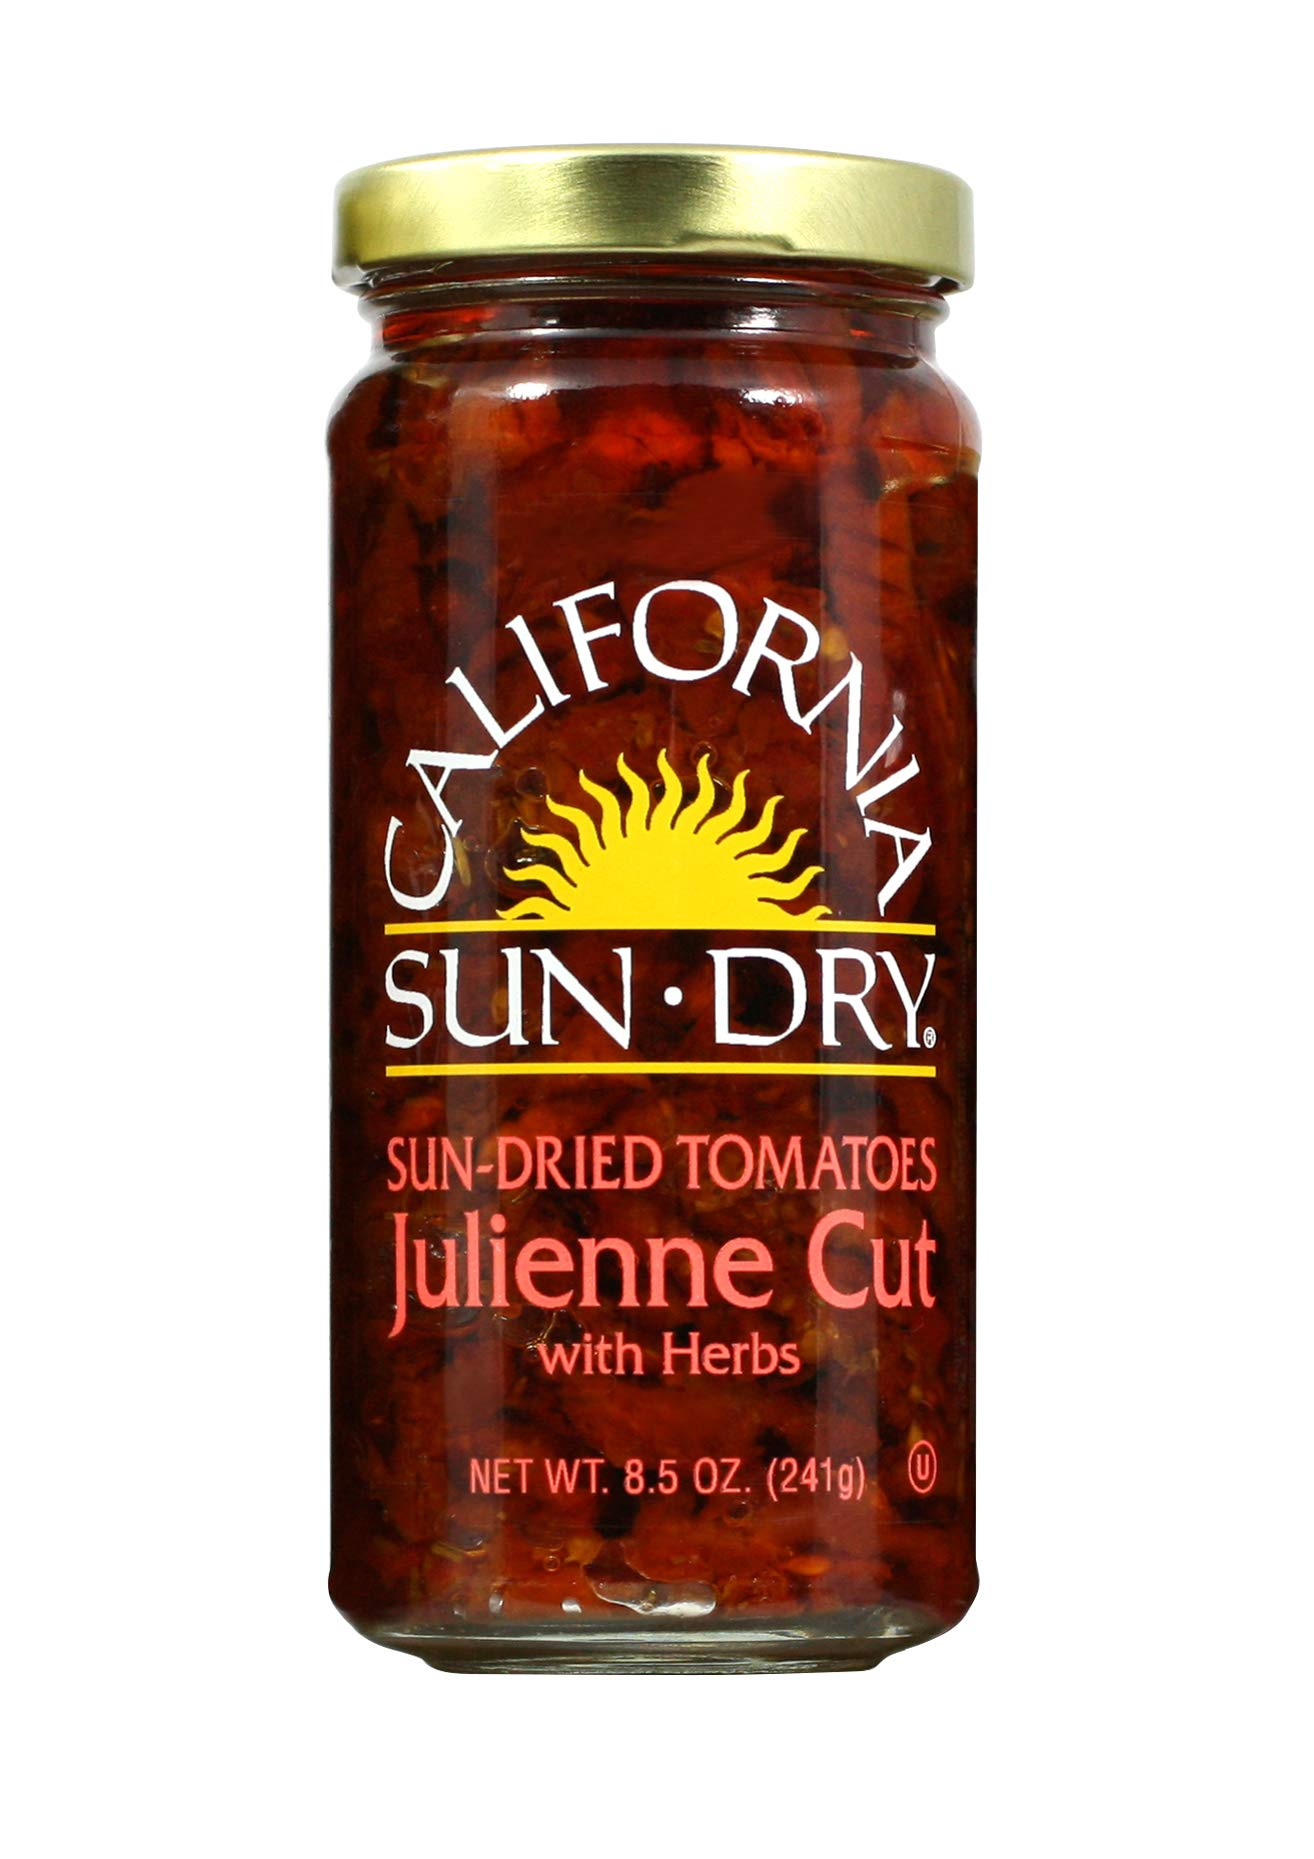 California Sun Dry Julienne Cut Tomatoes, 8.5 Ounce (Pack of 12) by California Sun-Dried